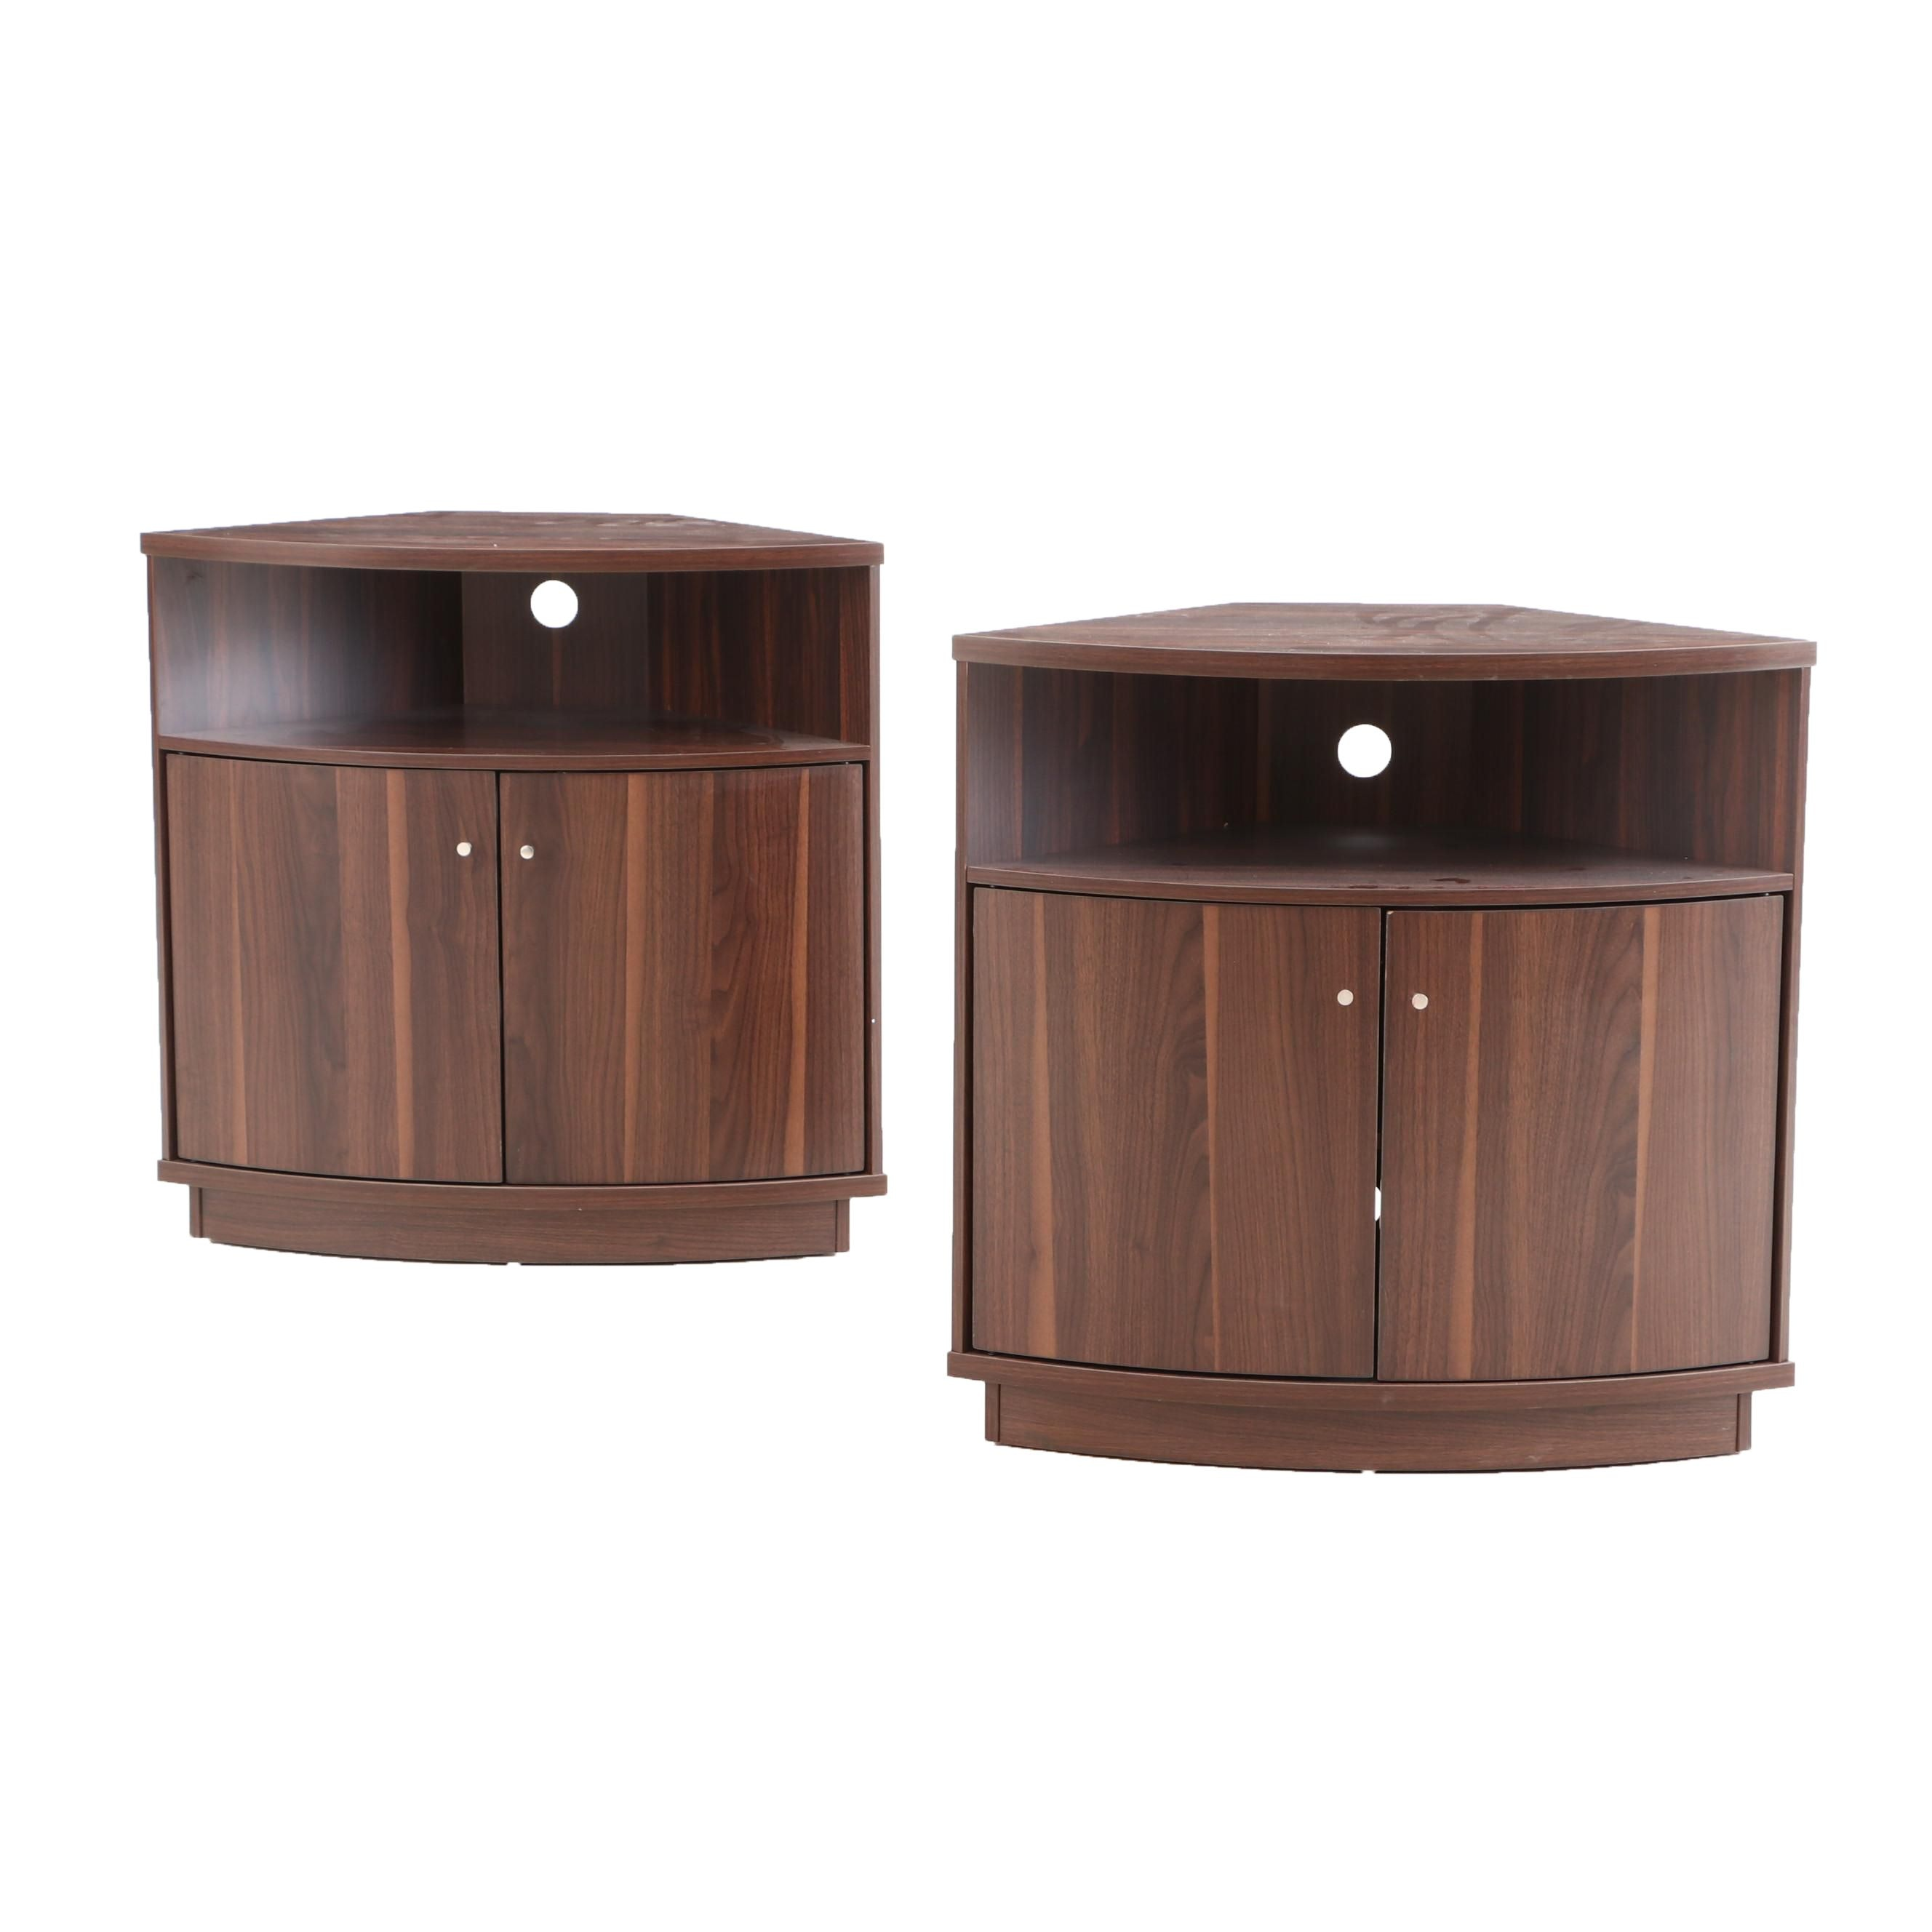 Pair of Corner Entertainment Cabinet Tables